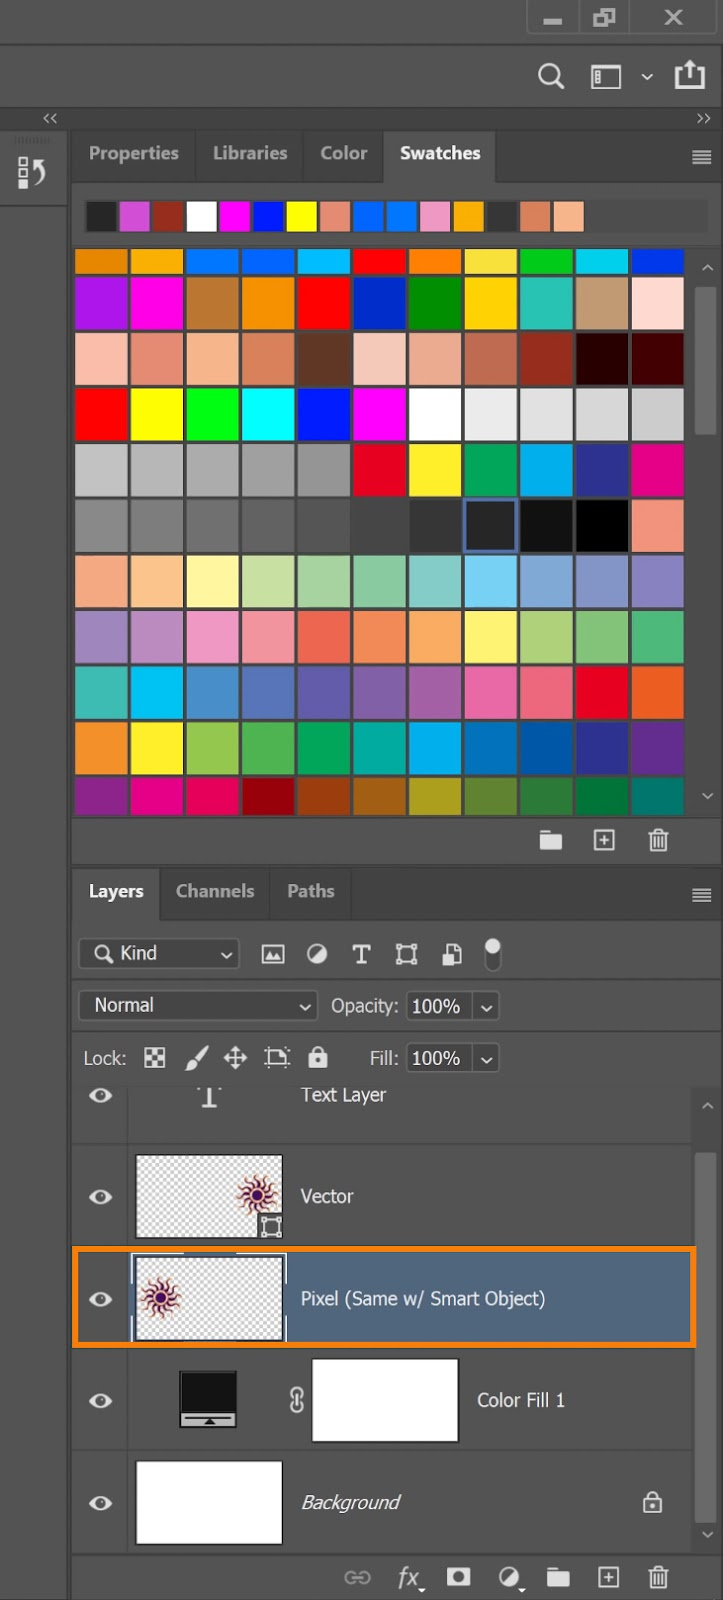 Select the Pixel layer